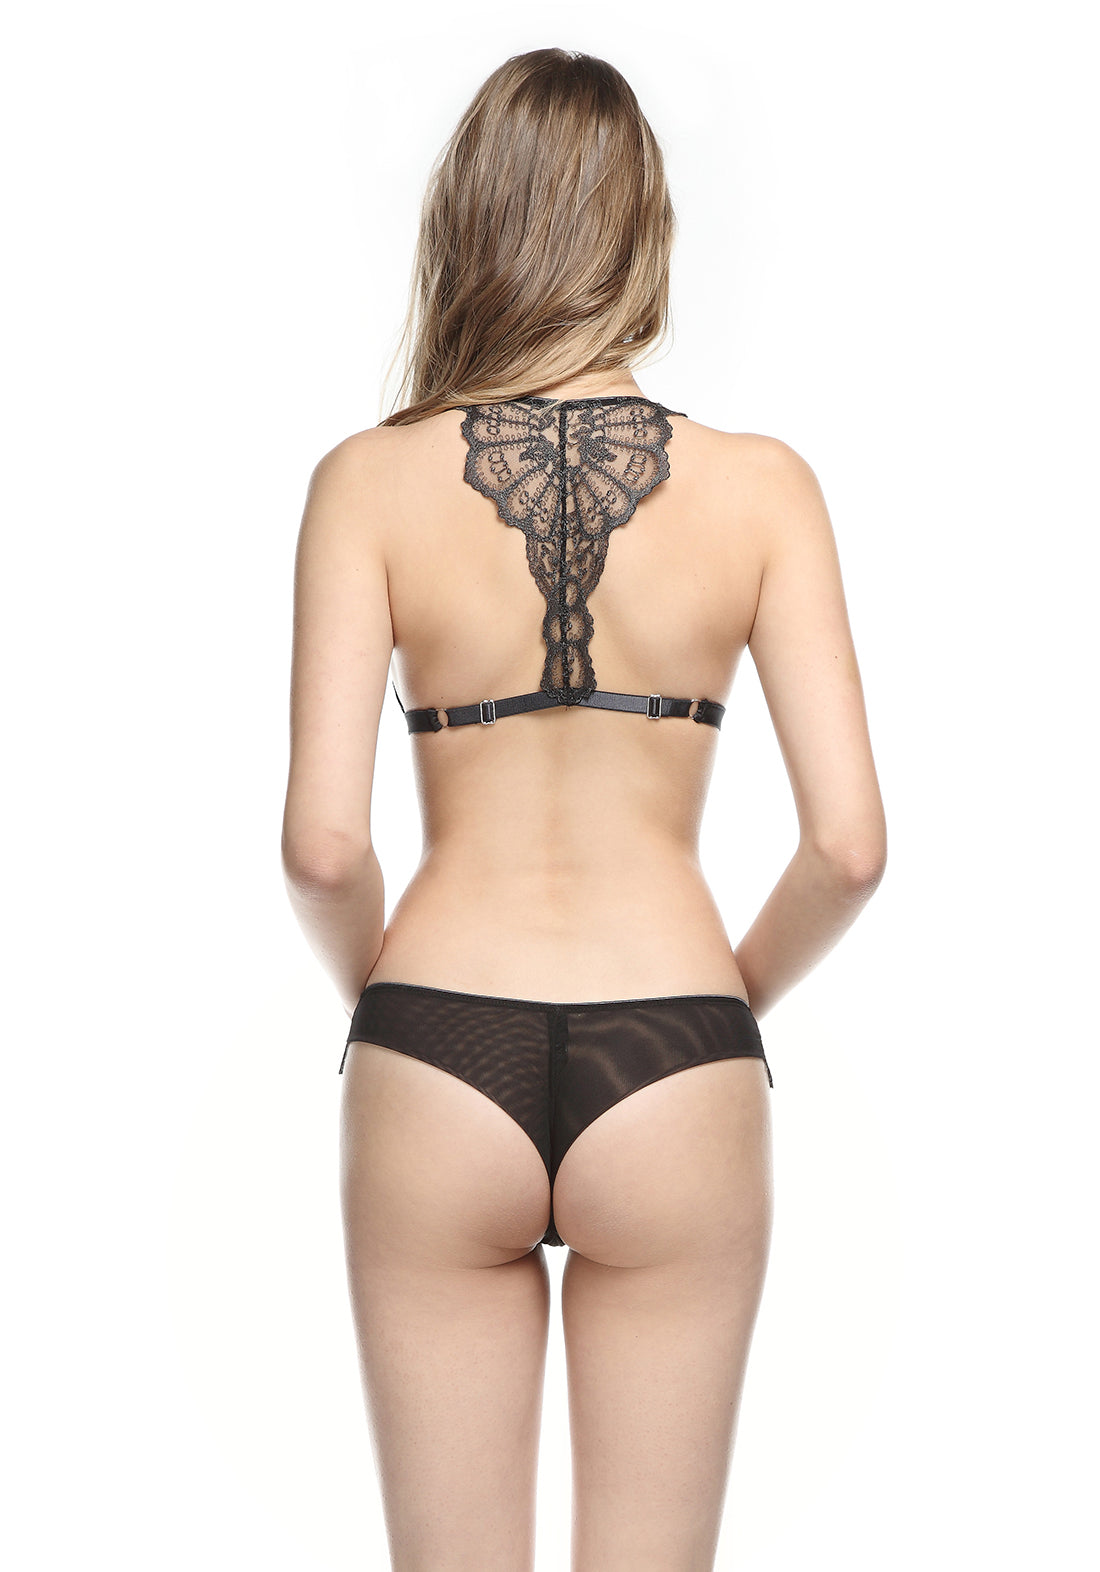 Coup de Foudre Thong in Moonshine